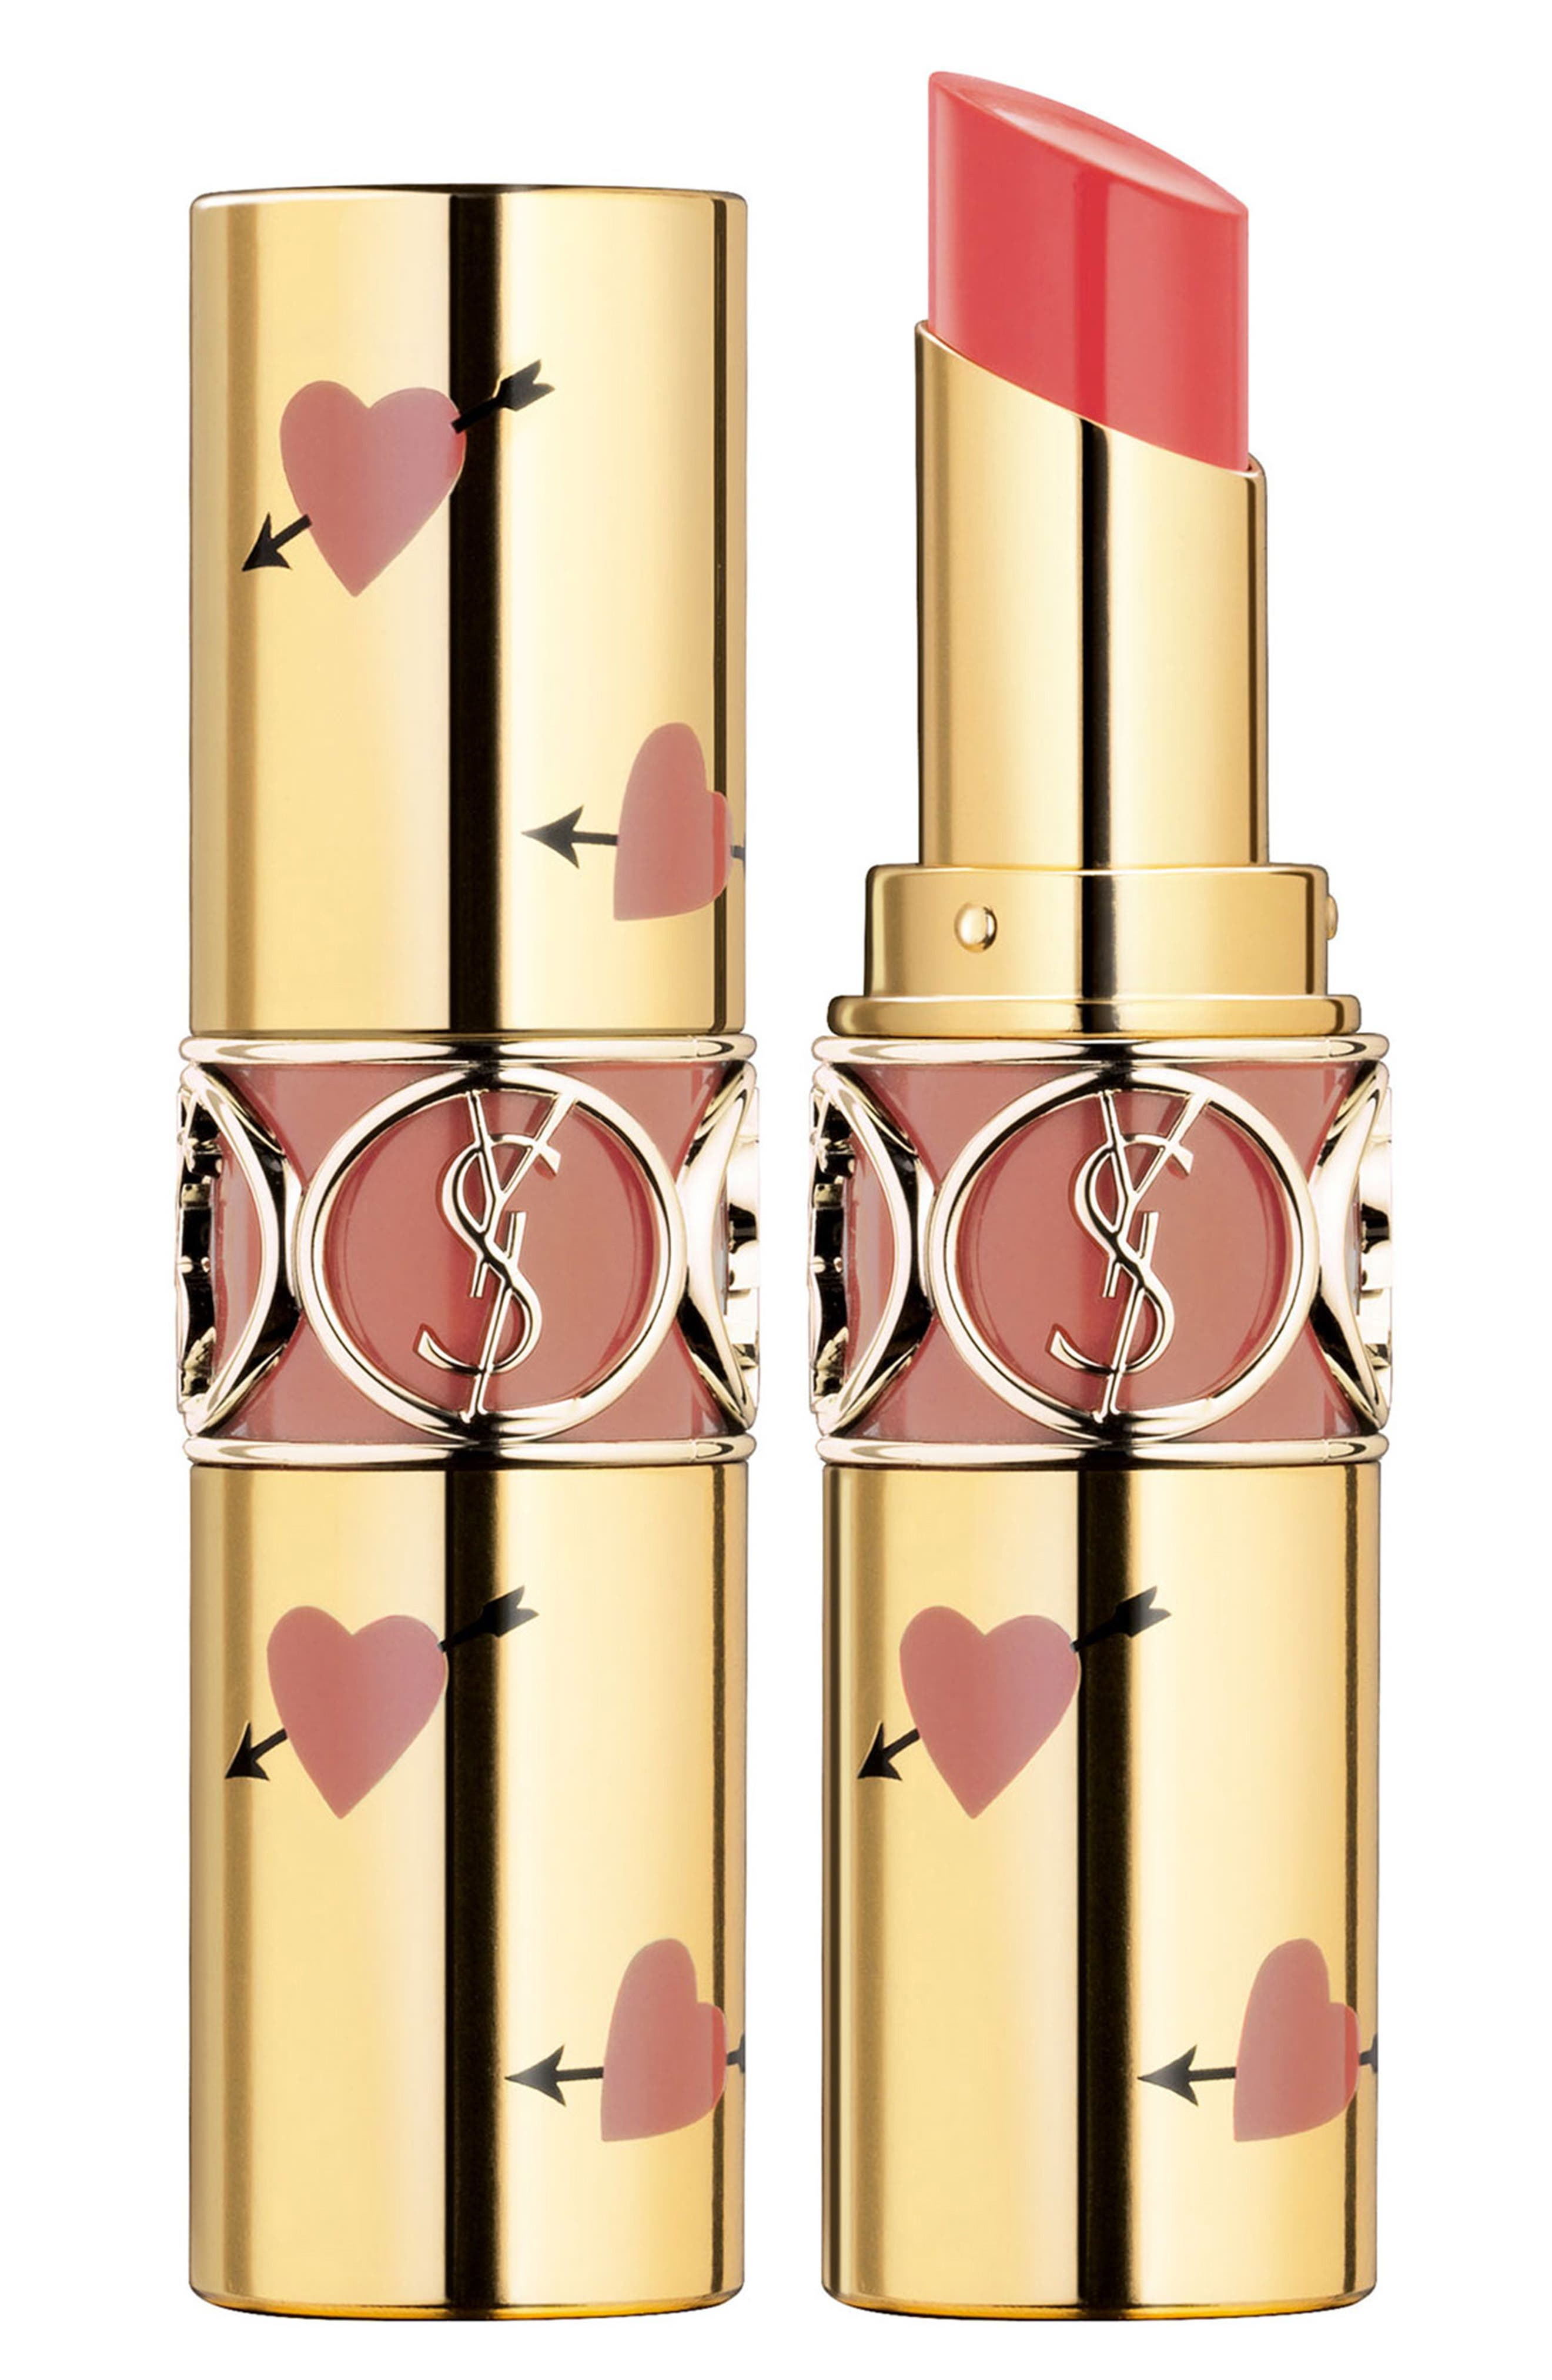 Yves Saint Laurent Heart And Arrow Rouge Volupte Shine Collector Oil-In-Stick Lipstick - 12 Corail Dolman